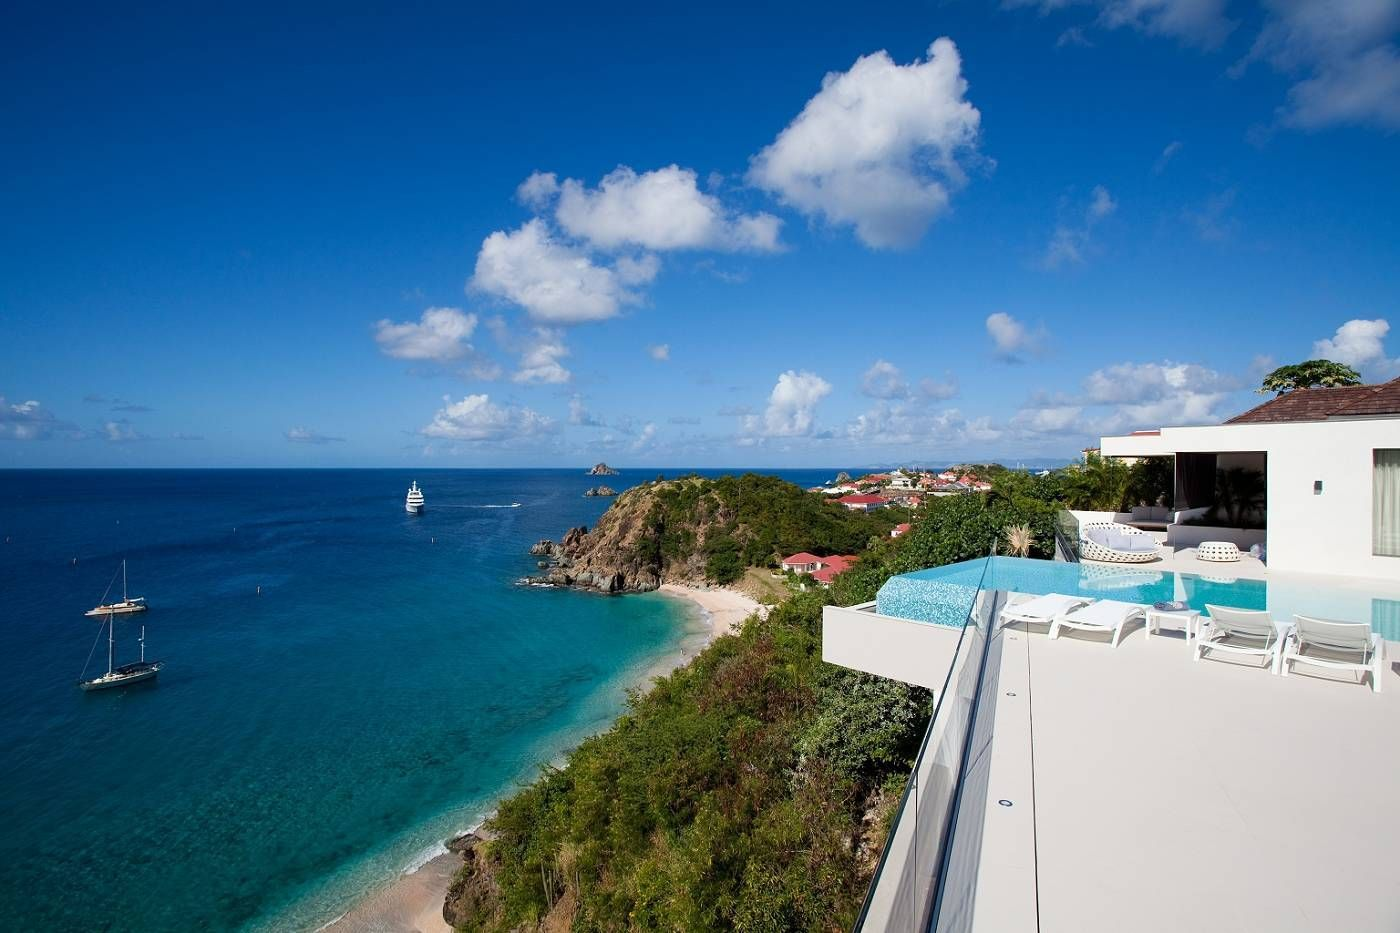 villa rentals and luxury hotels on st barth, st barts, st